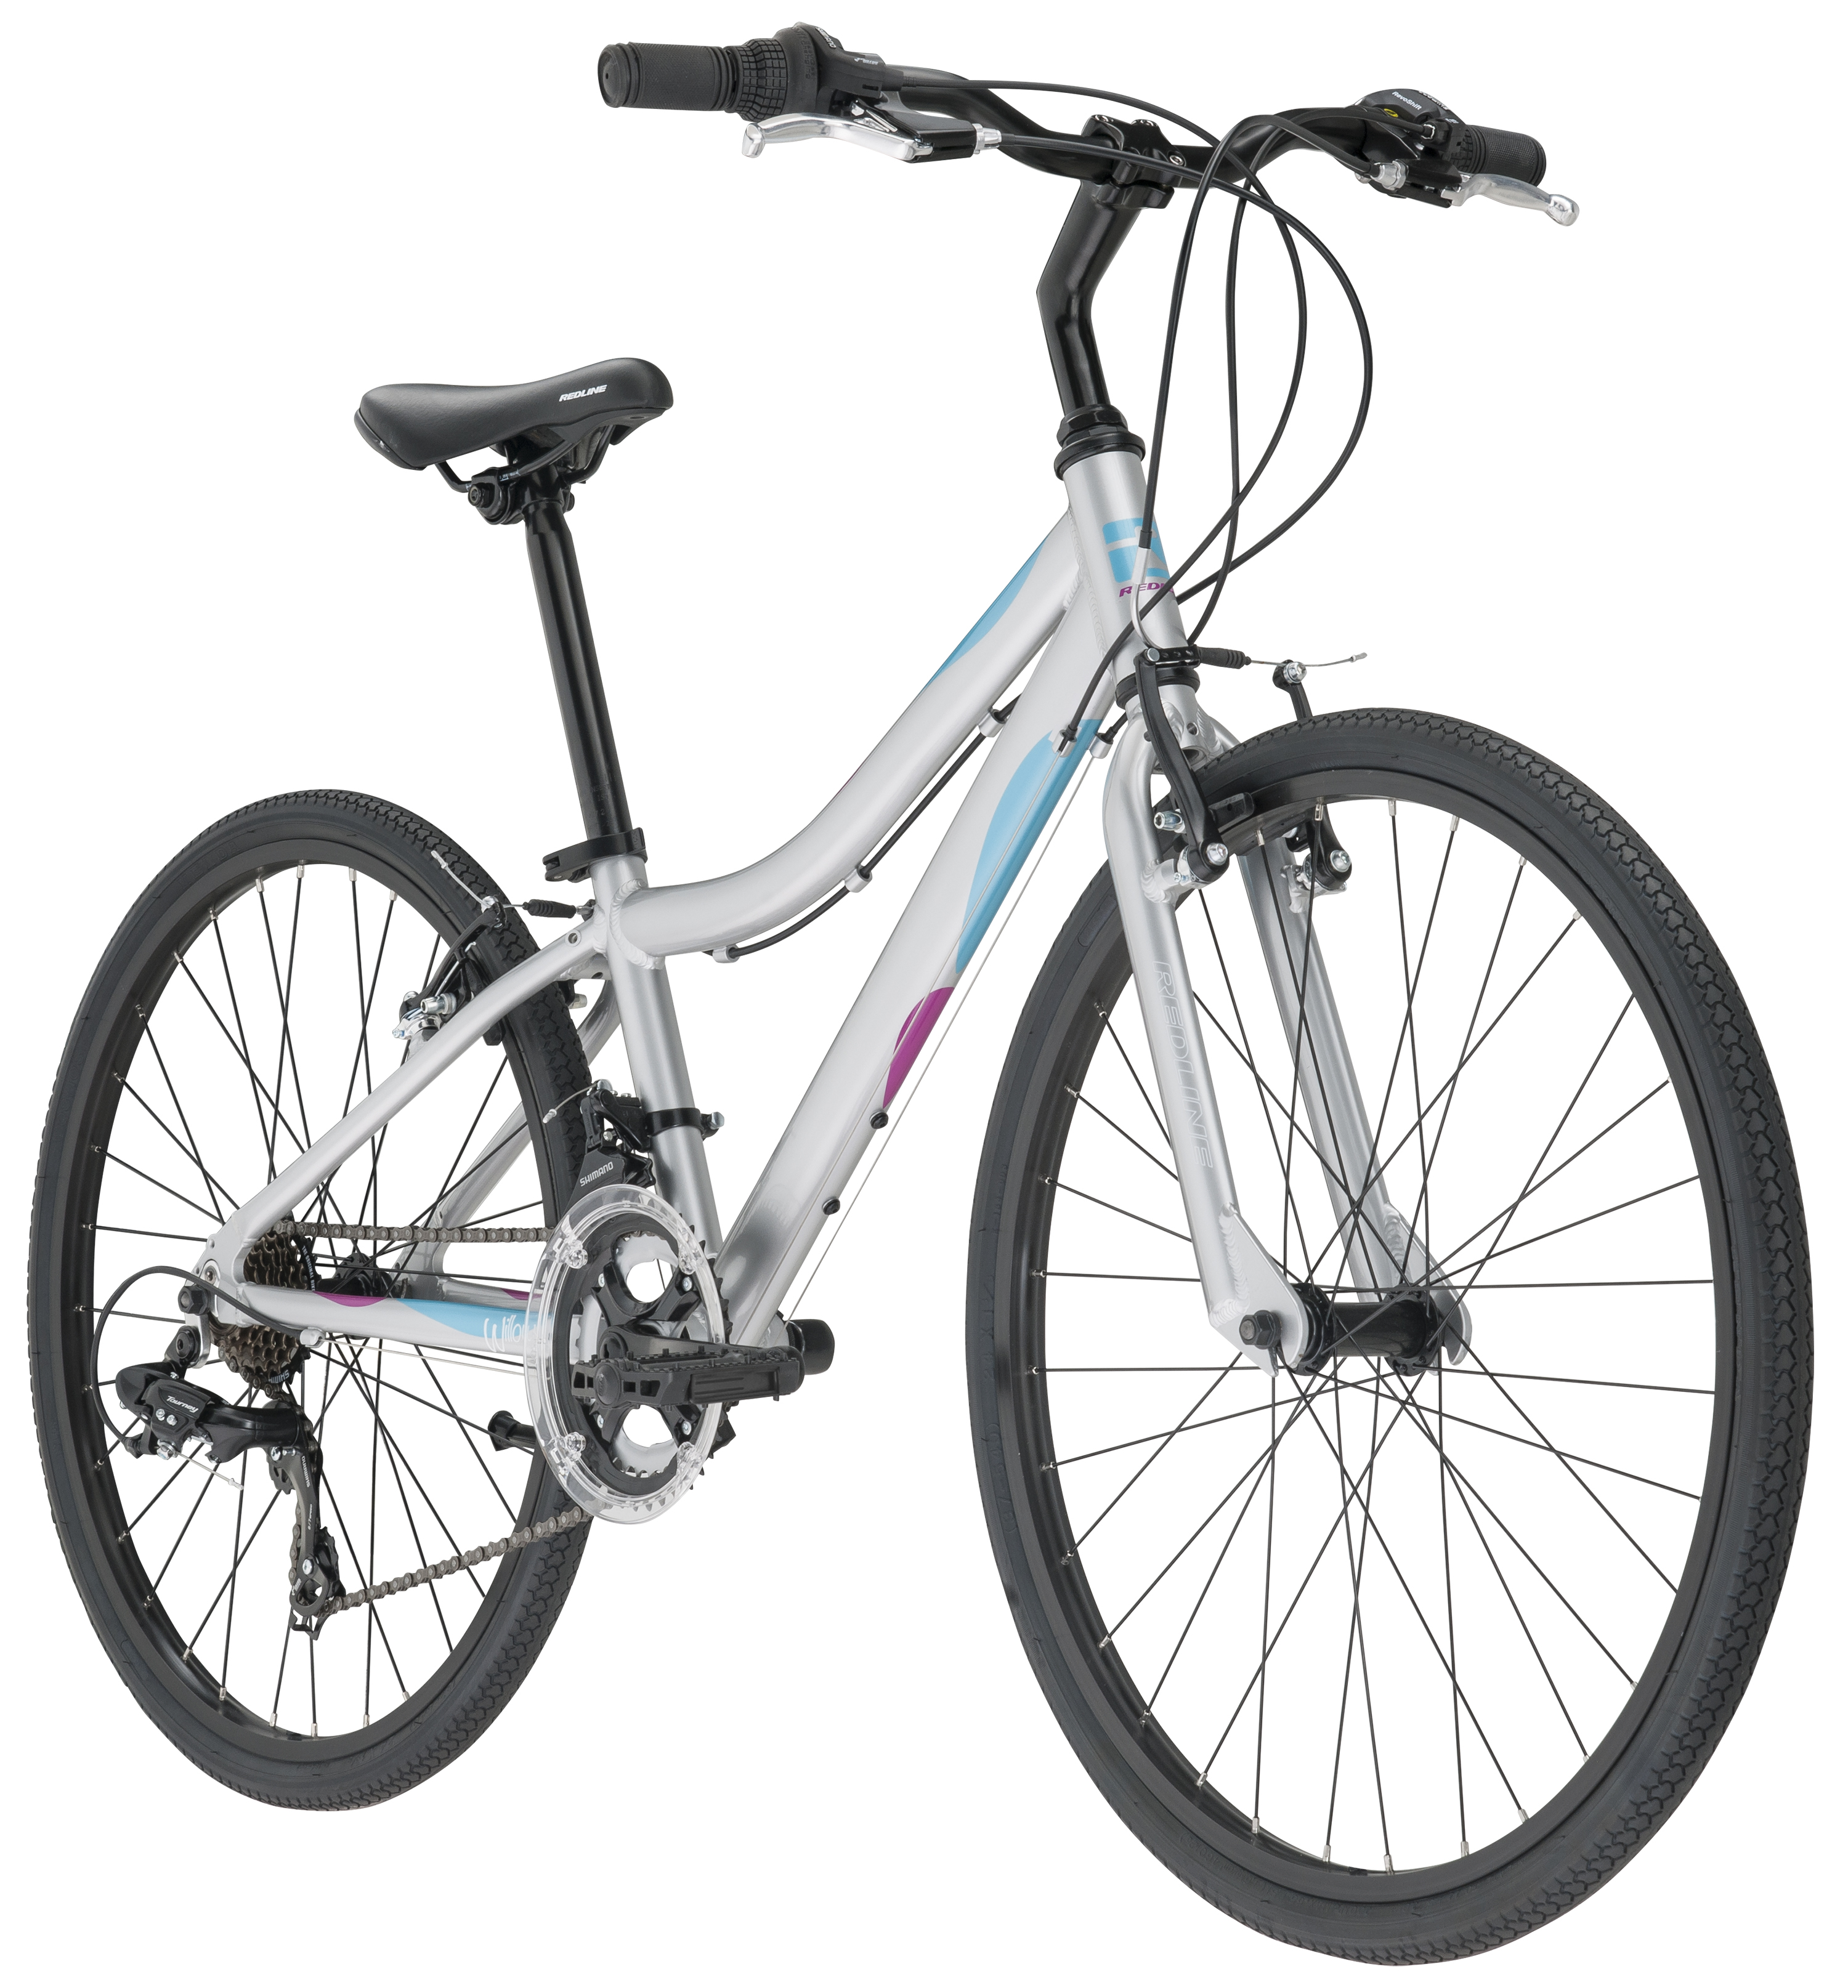 "Redline Bikes Willow 24 Girl's Performance Hybrid Bike, 24"" Wheels, Silver by ACCELL NORTH AMERICA INC"